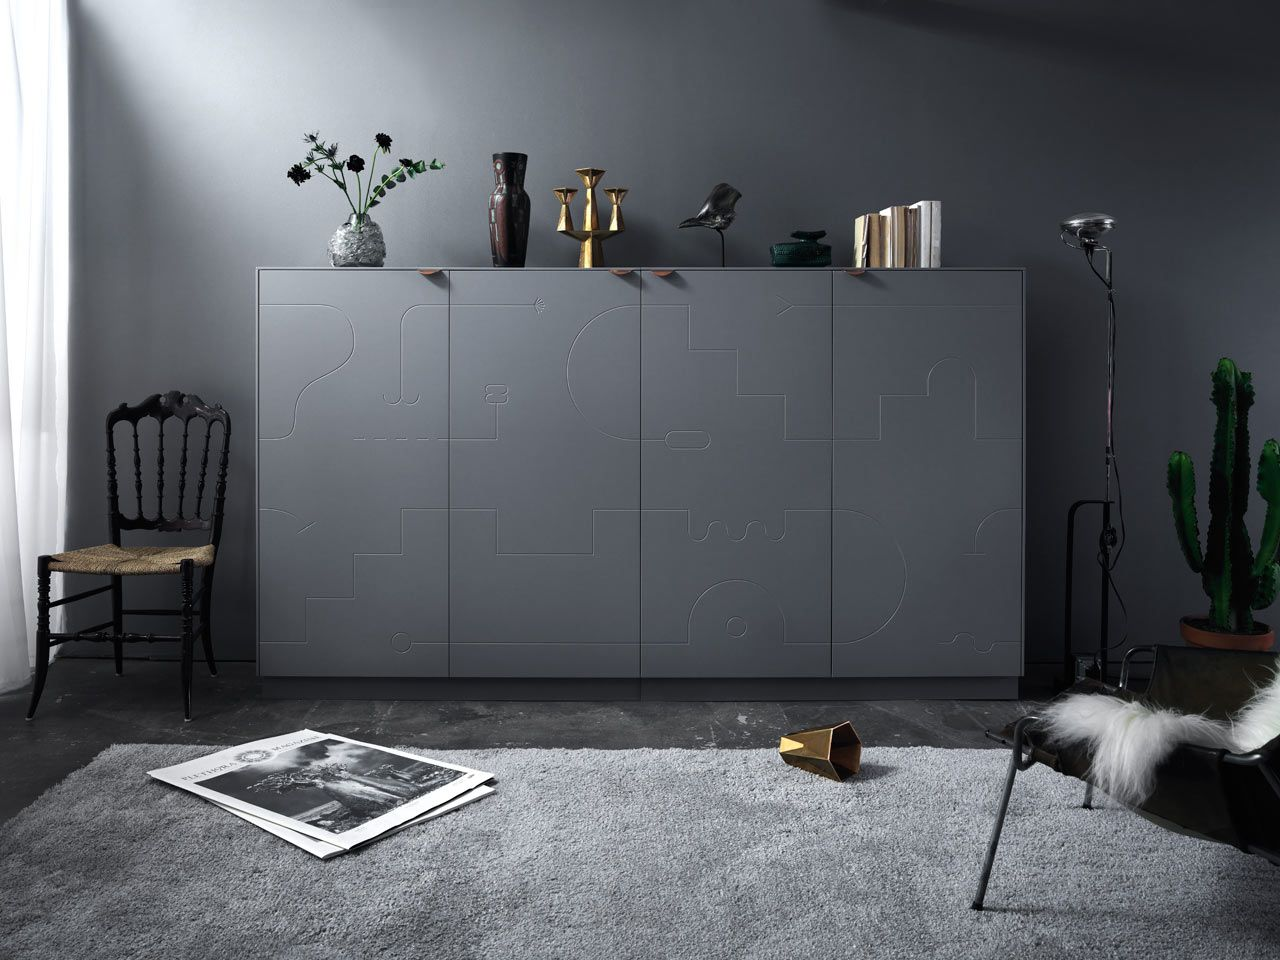 superfront will elevate a basic ikea sideboard with new fronts by swedish artist klas ernflo